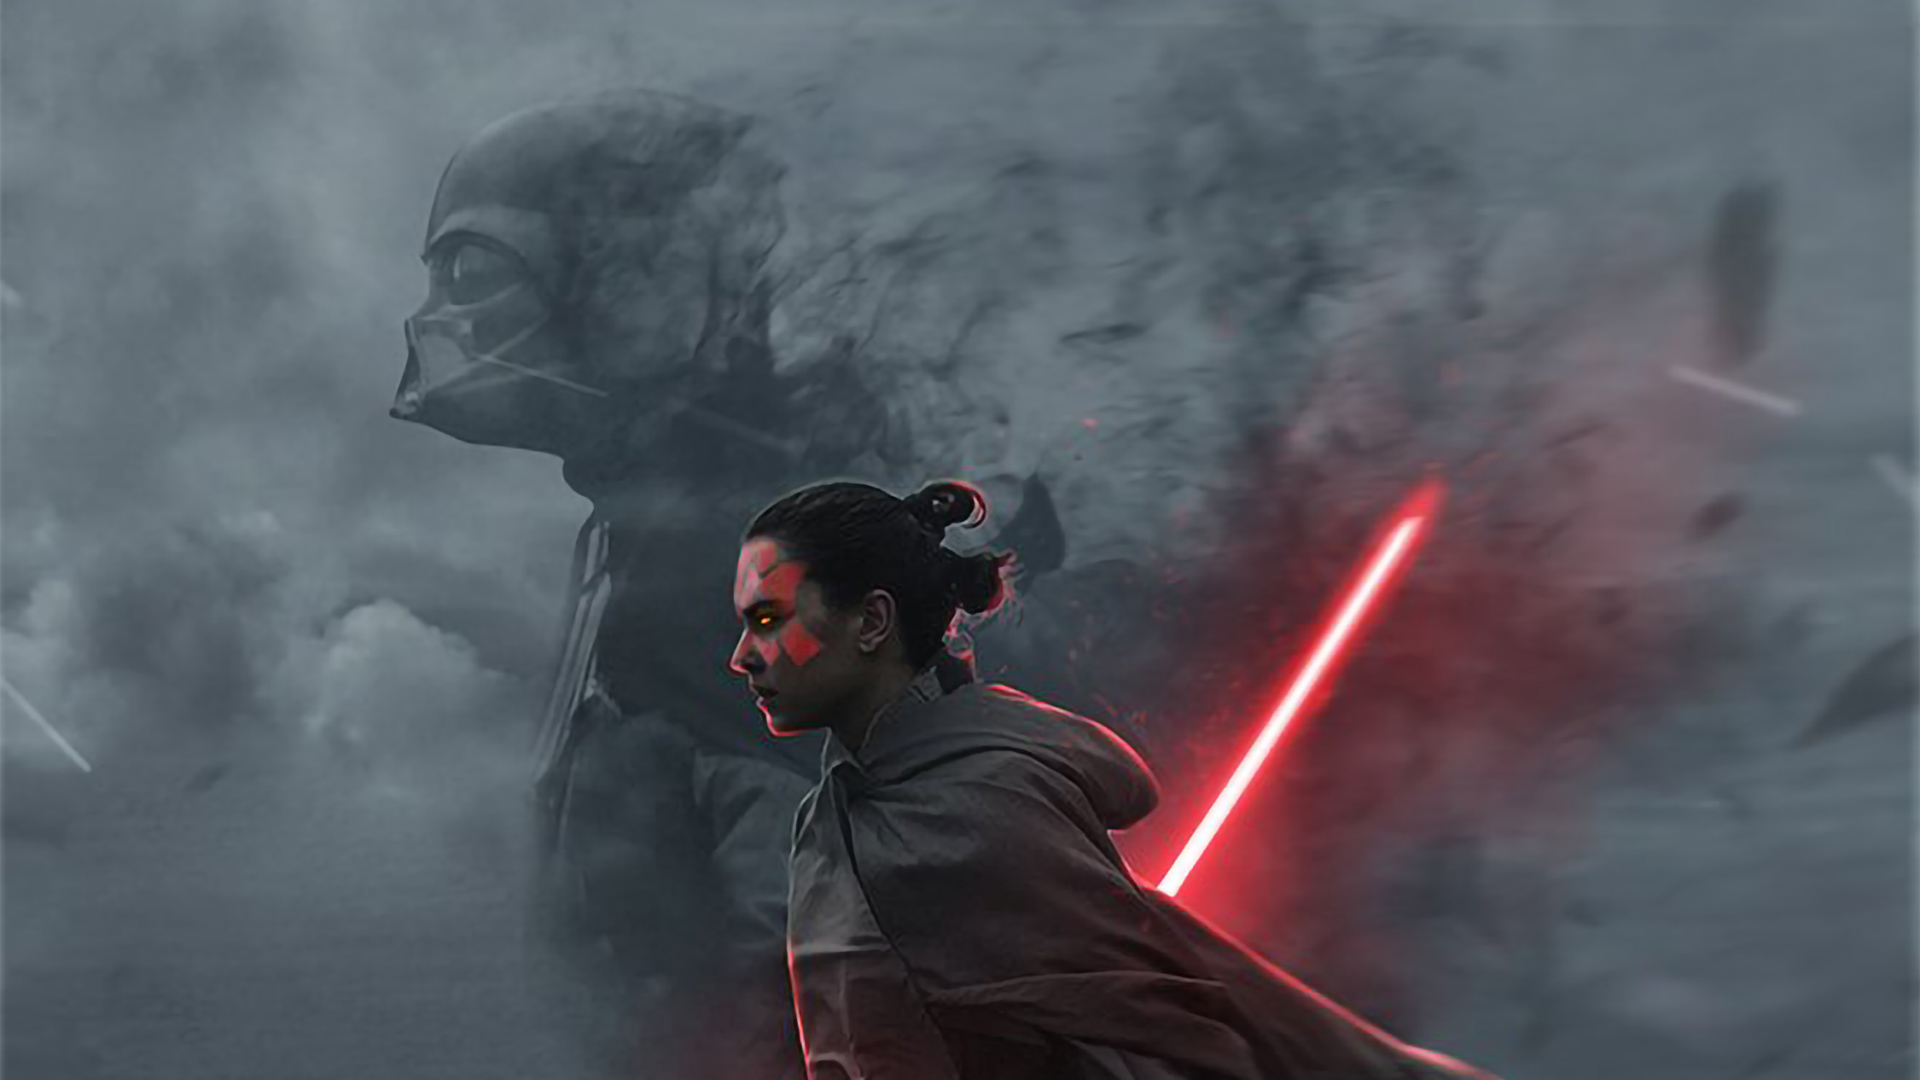 1336x768 Dark Rey Laptop Hd Hd 4k Wallpapers Images Backgrounds Photos And Pictures